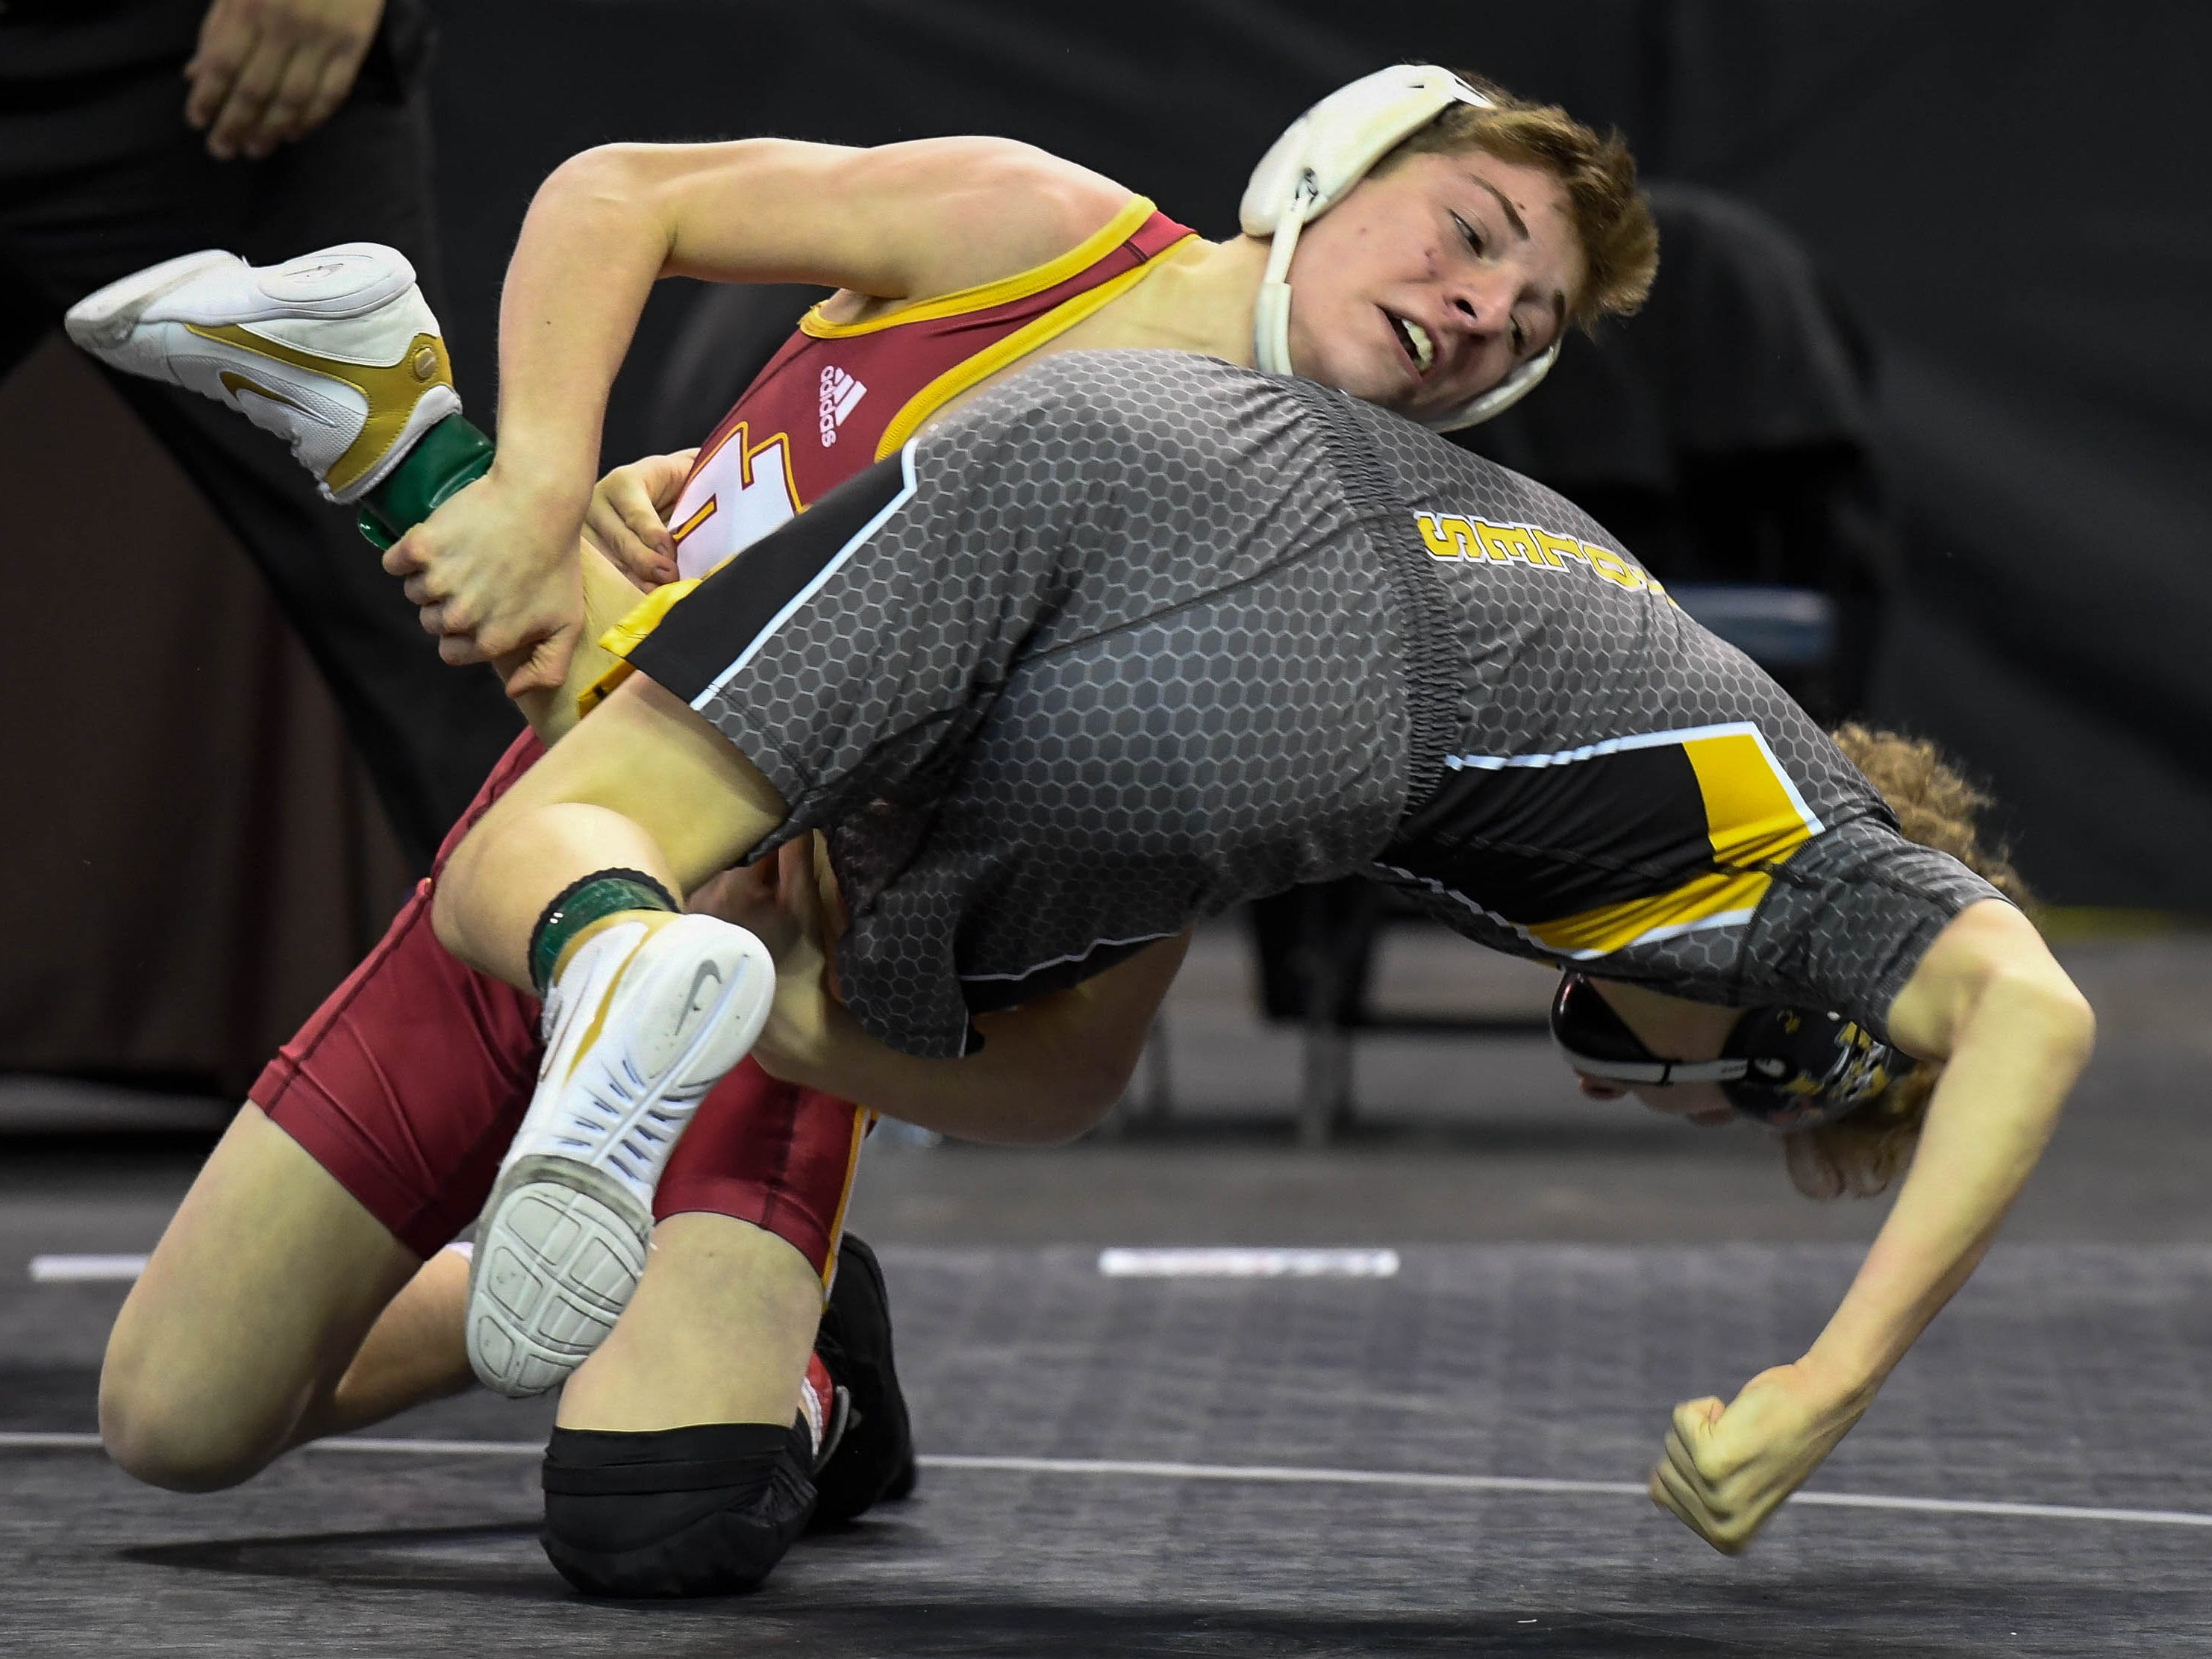 Alec Freeman, Evansville Mater Dei wrestles Blaze Garcia, Avon, in the 106 weight class at  the Indiana High School Athletic Association Semi-State Wrestling Tournament held at the Ford Center Saturday, February 9, 2019.